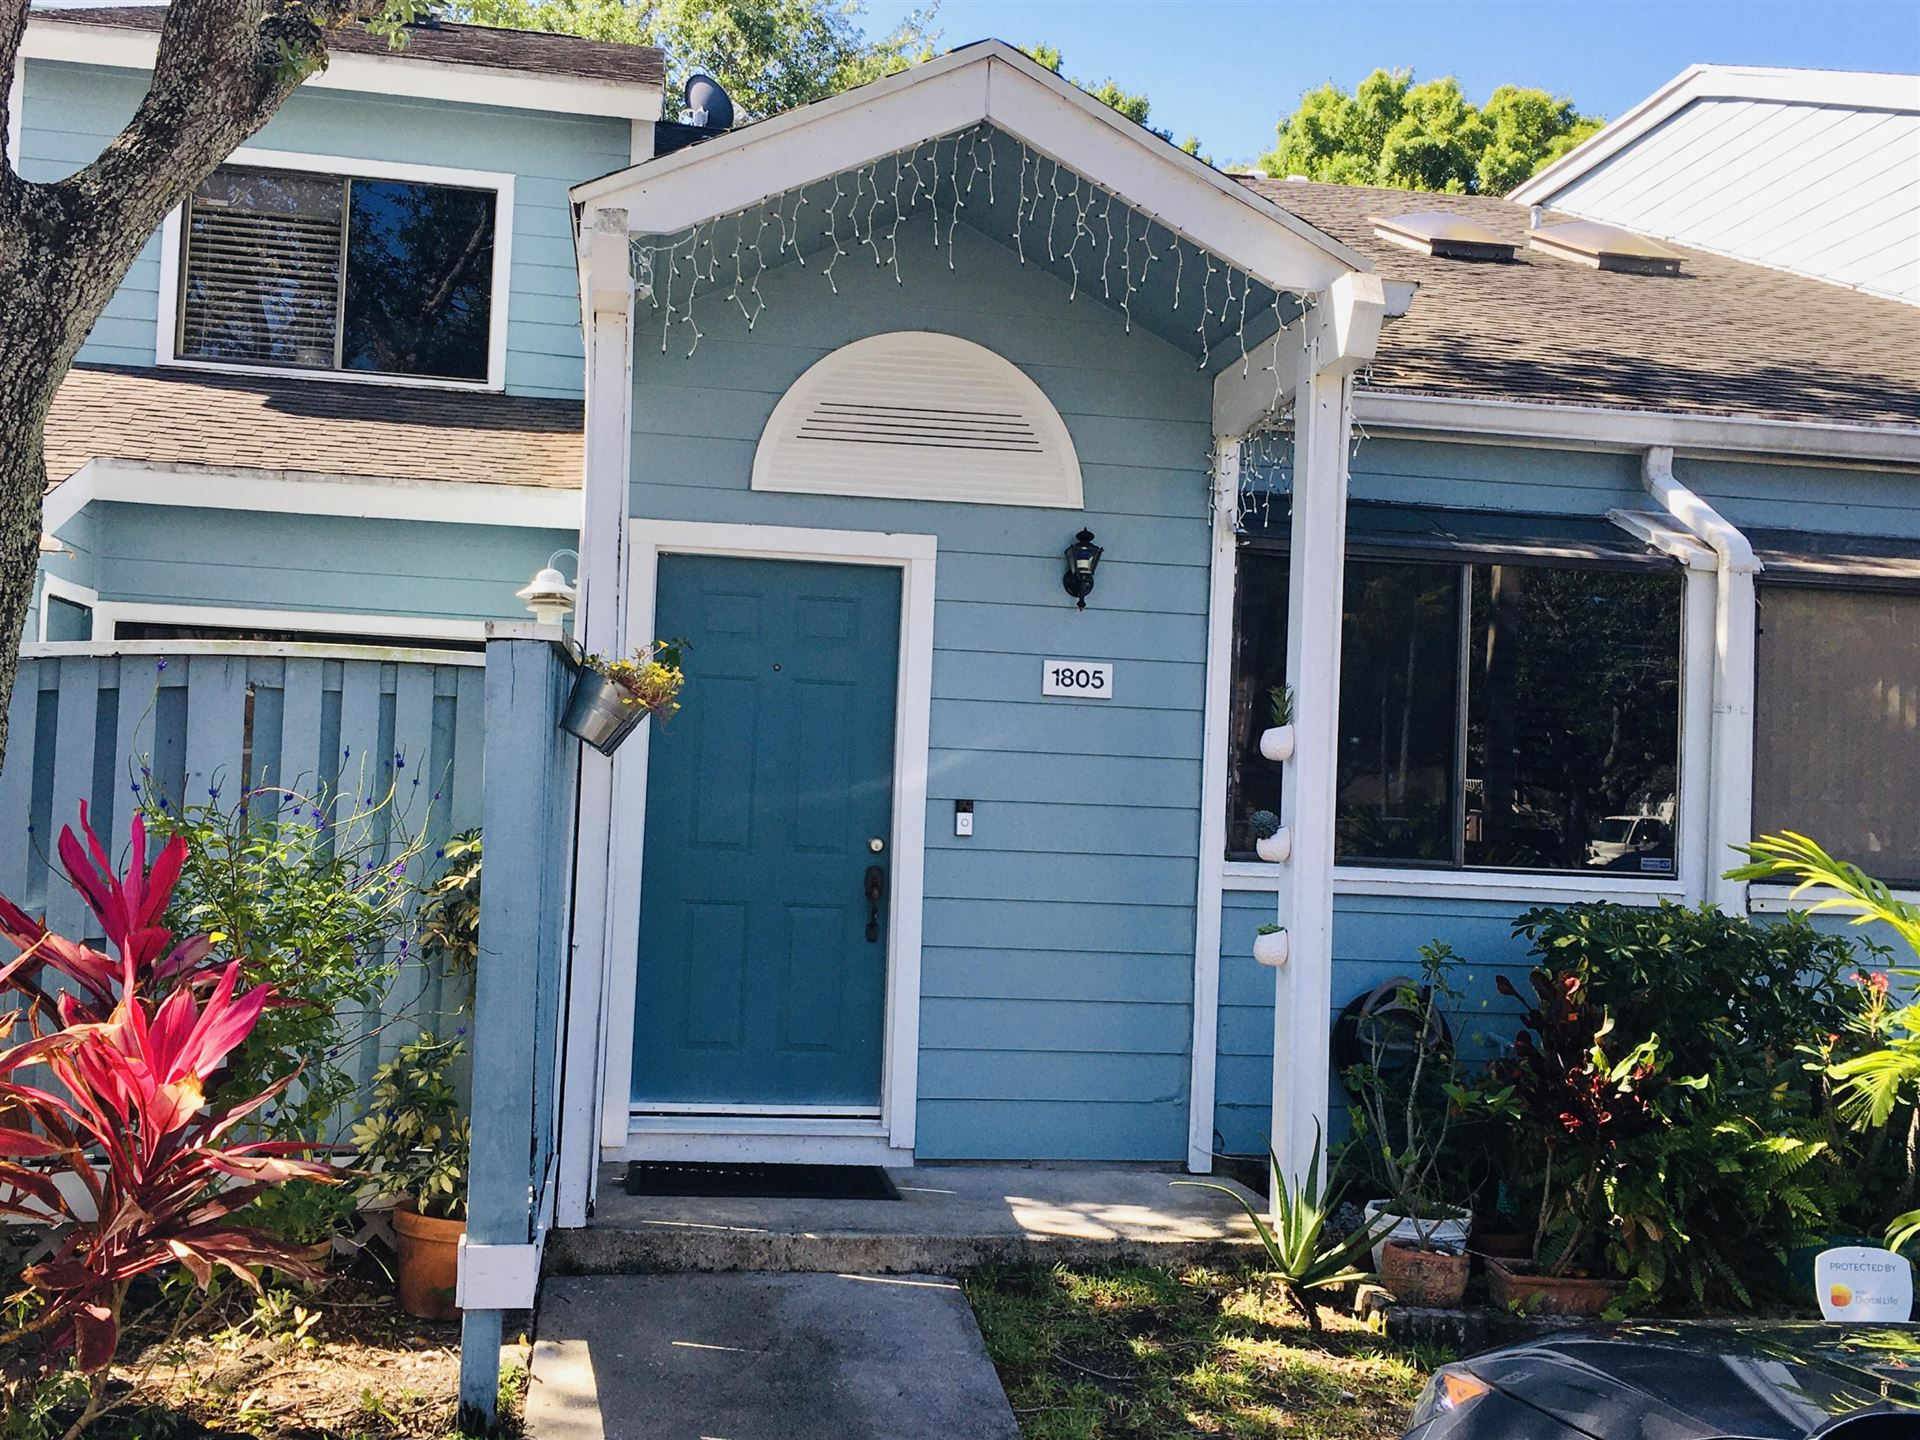 Photo of 1805 Runners Way, North Lauderdale, FL 33068 (MLS # RX-10731958)